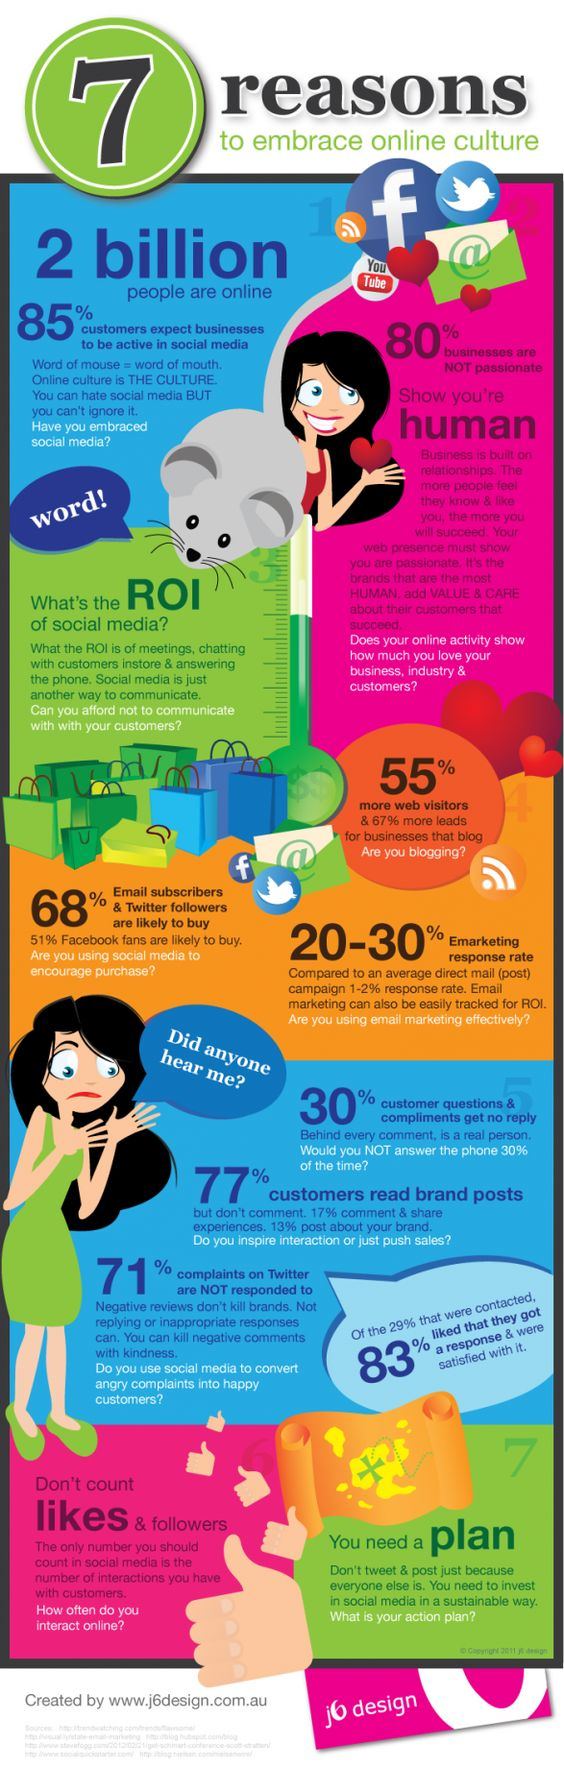 7 Reasons to Embrace Online Culture (Infographic)